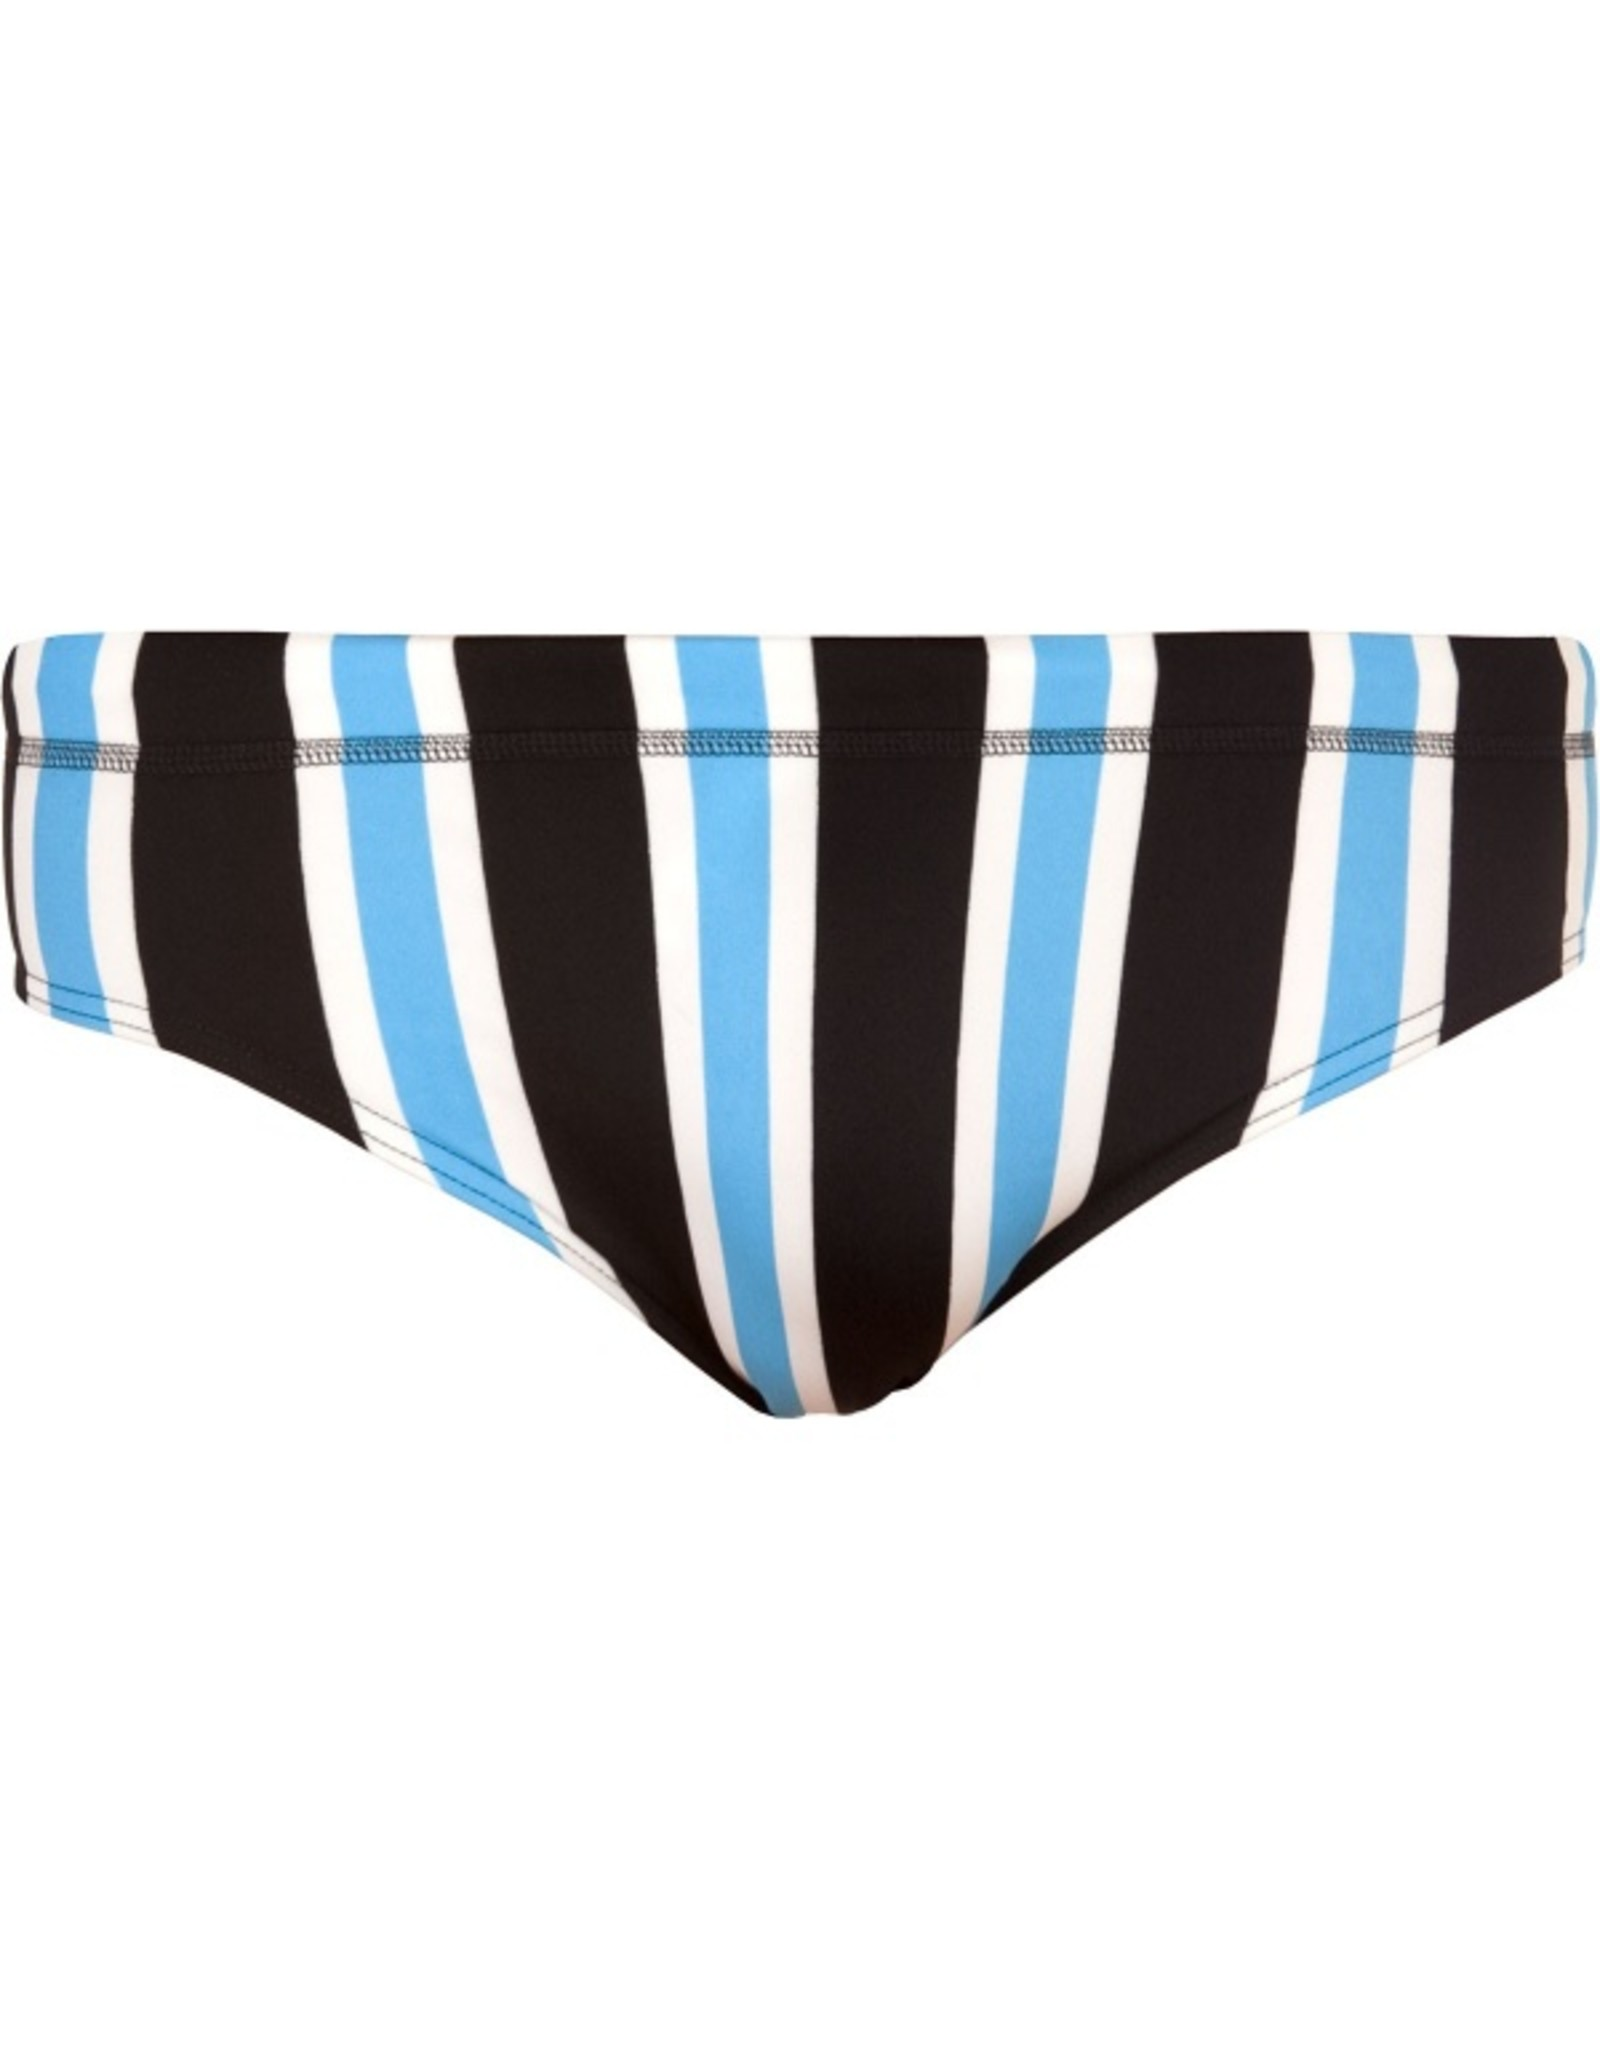 Funky Trunks Funky Trunks Mens Classic Briefs Churchill Stripe XS